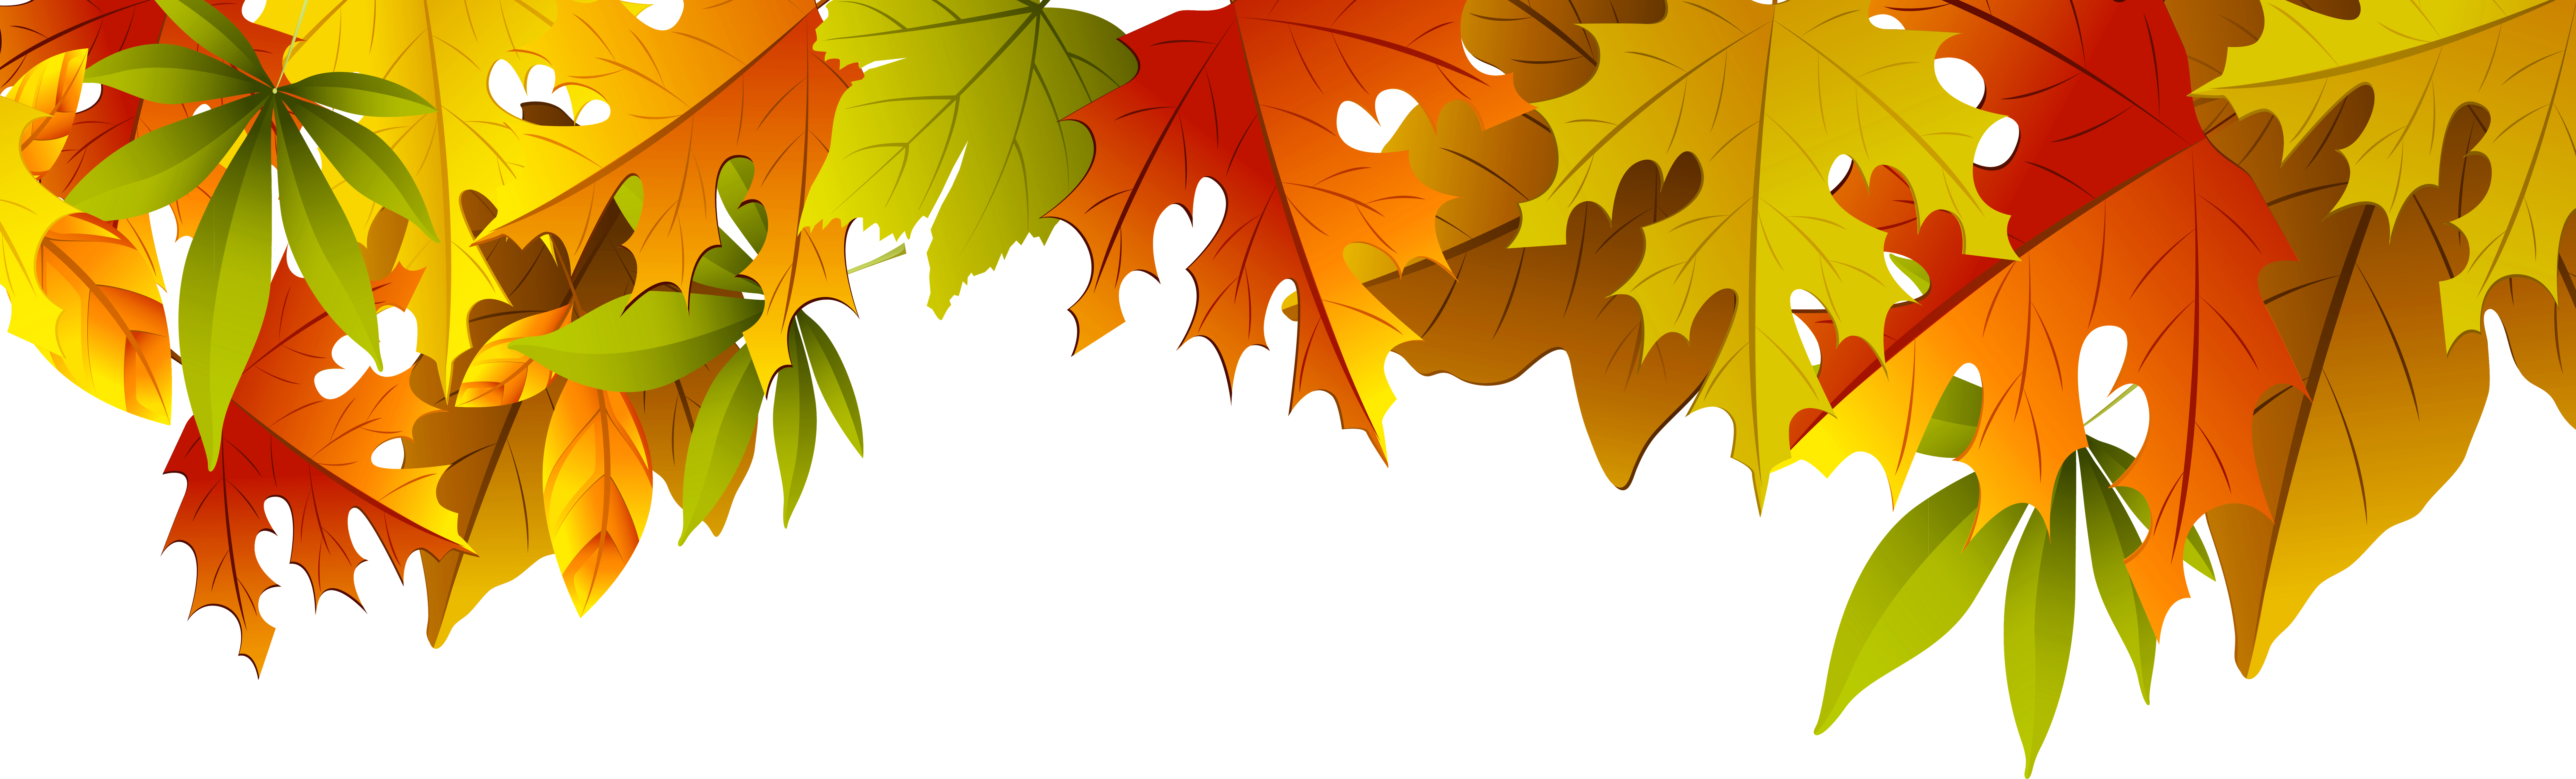 Adoption star annual appeal. Clipart thanksgiving family